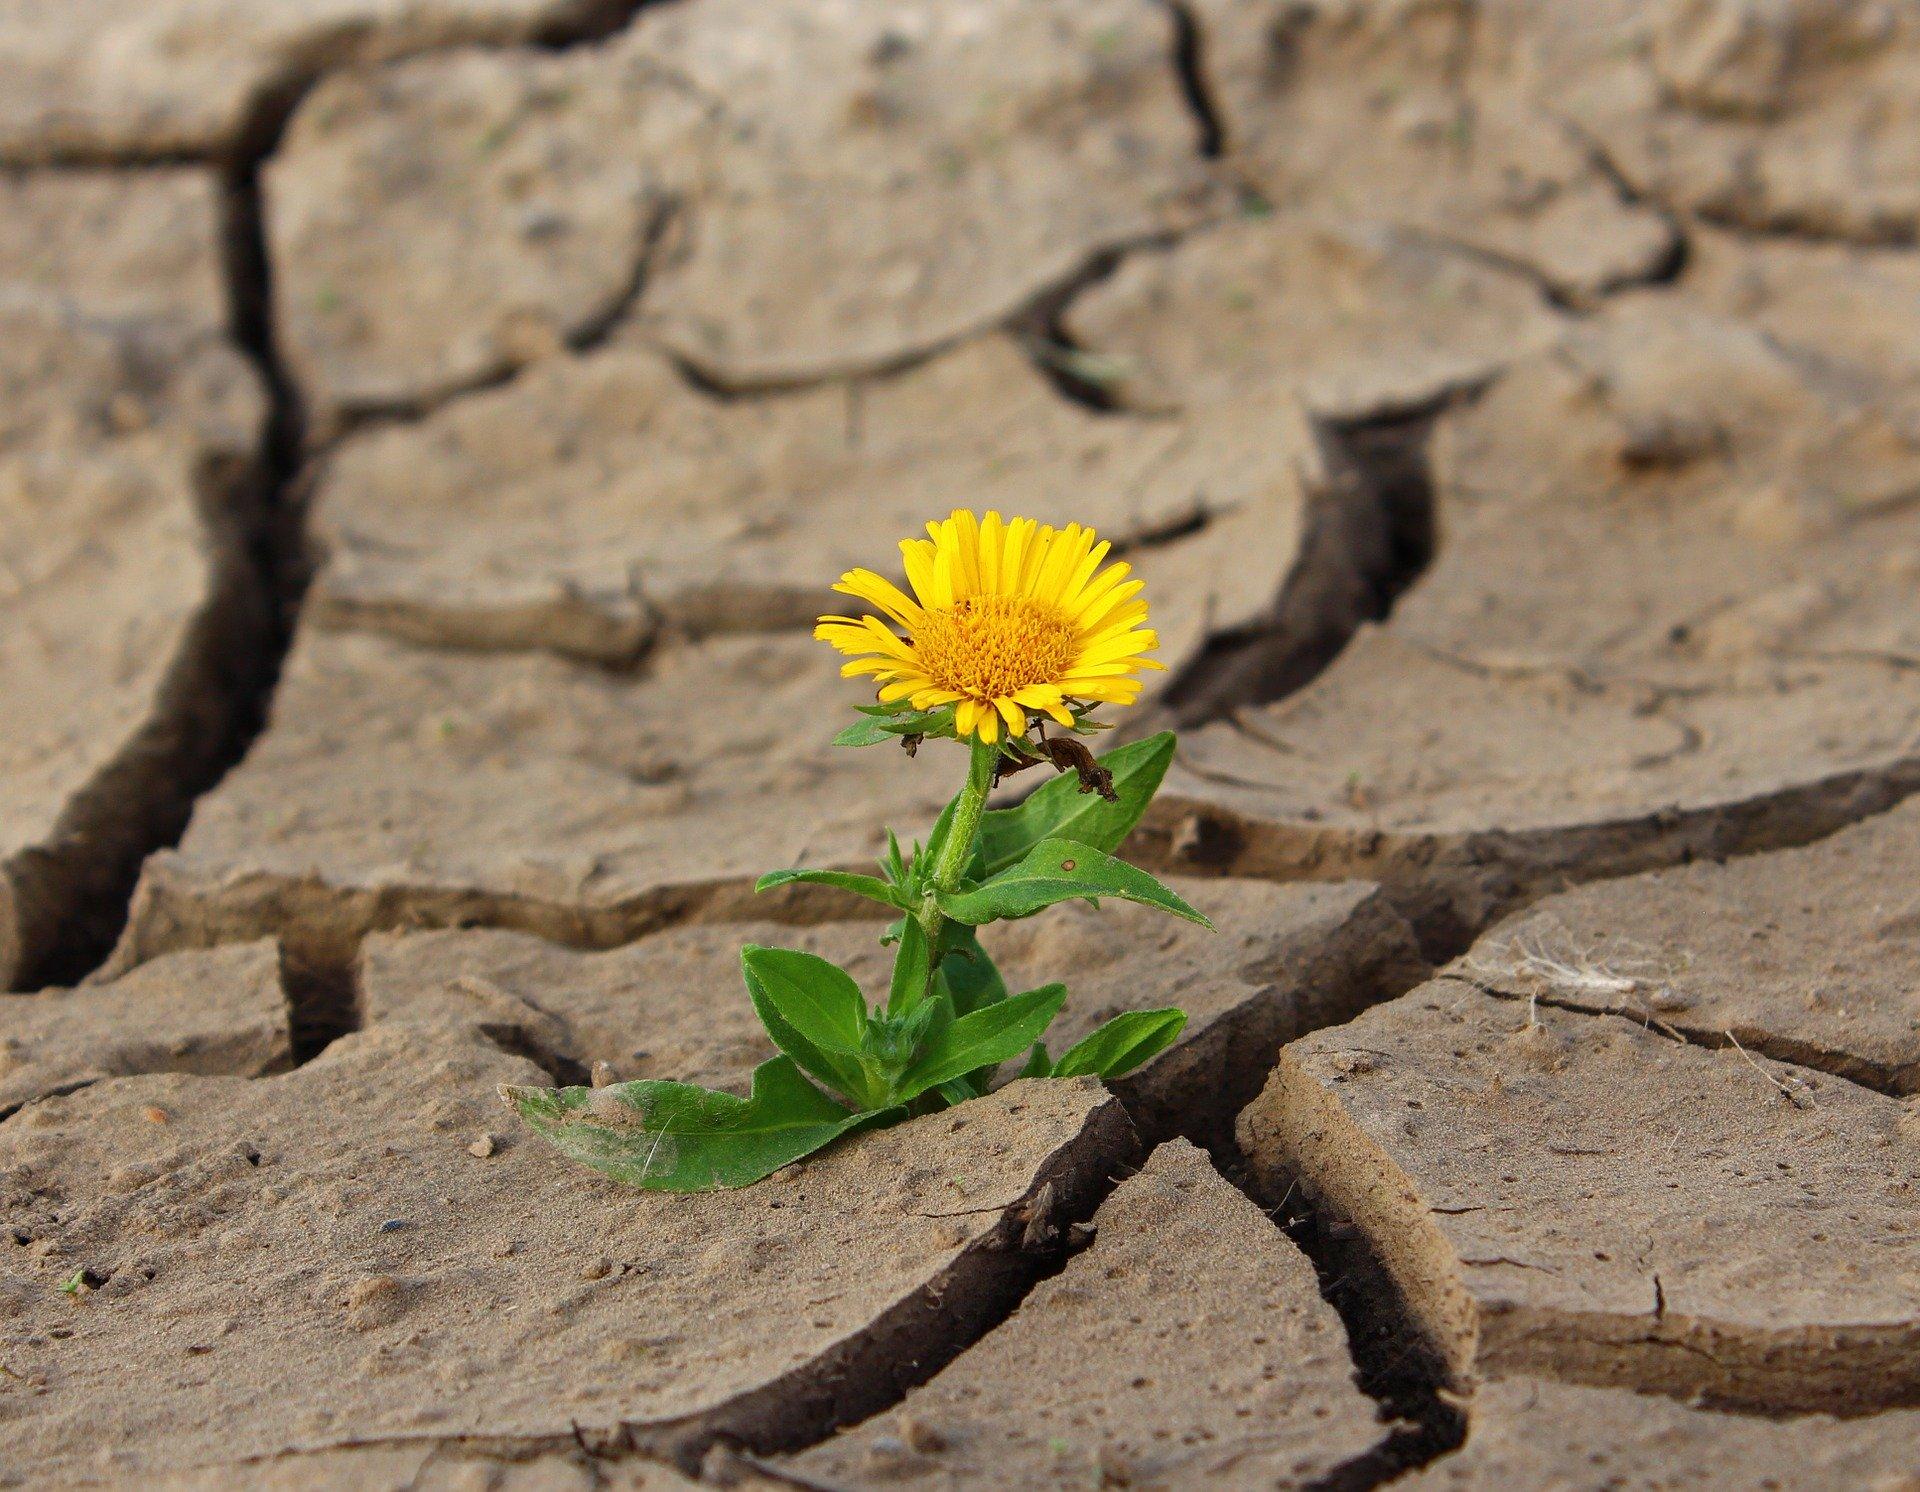 Resilience: dried up, cracked earth with a yellow flower.